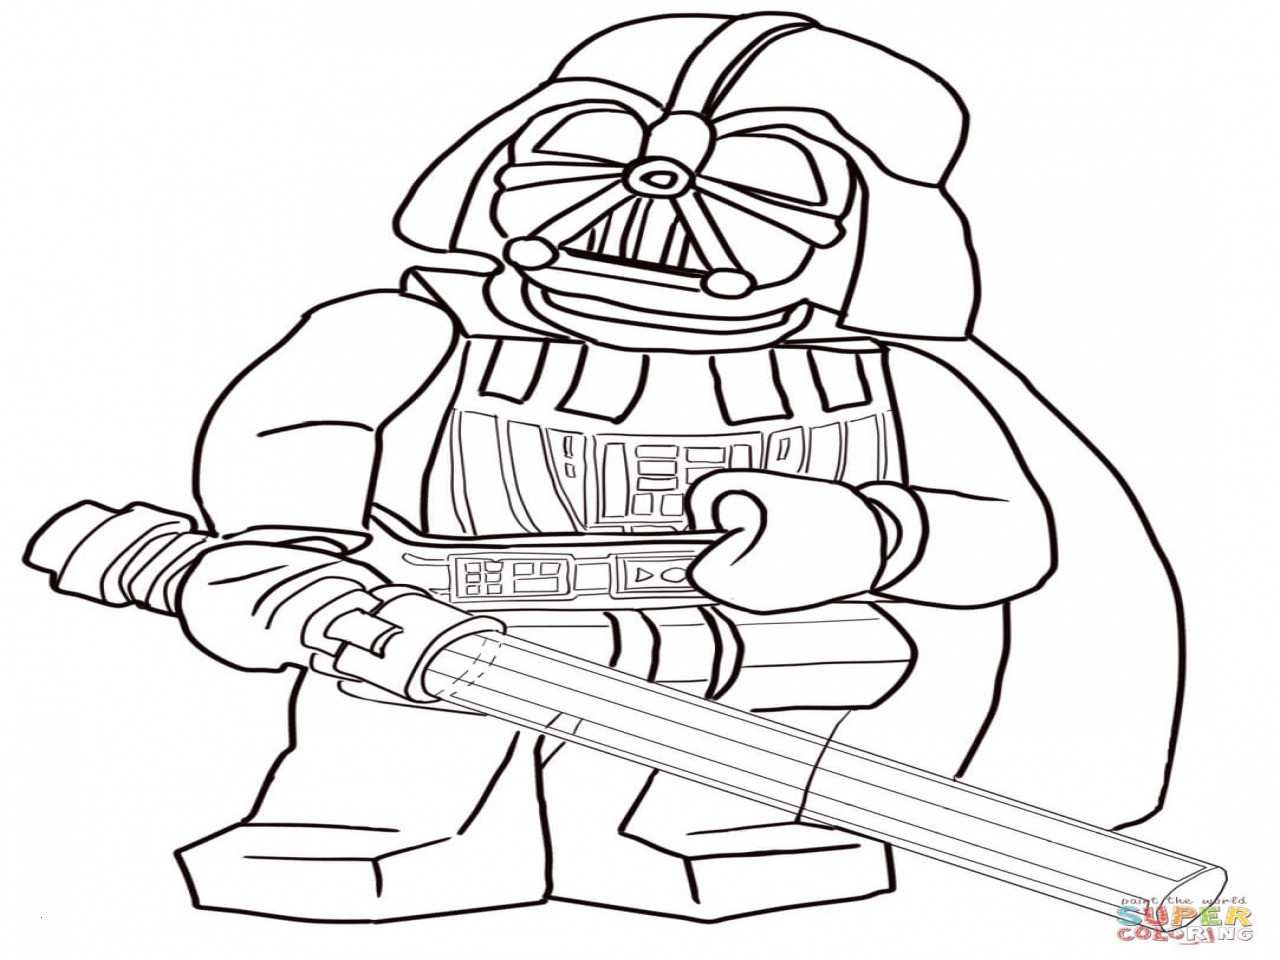 Darth Vader Ausmalbilder Neu Darth Vader Coloring Pages New 32 Star Wars Ausmalbilder Darth Fotos